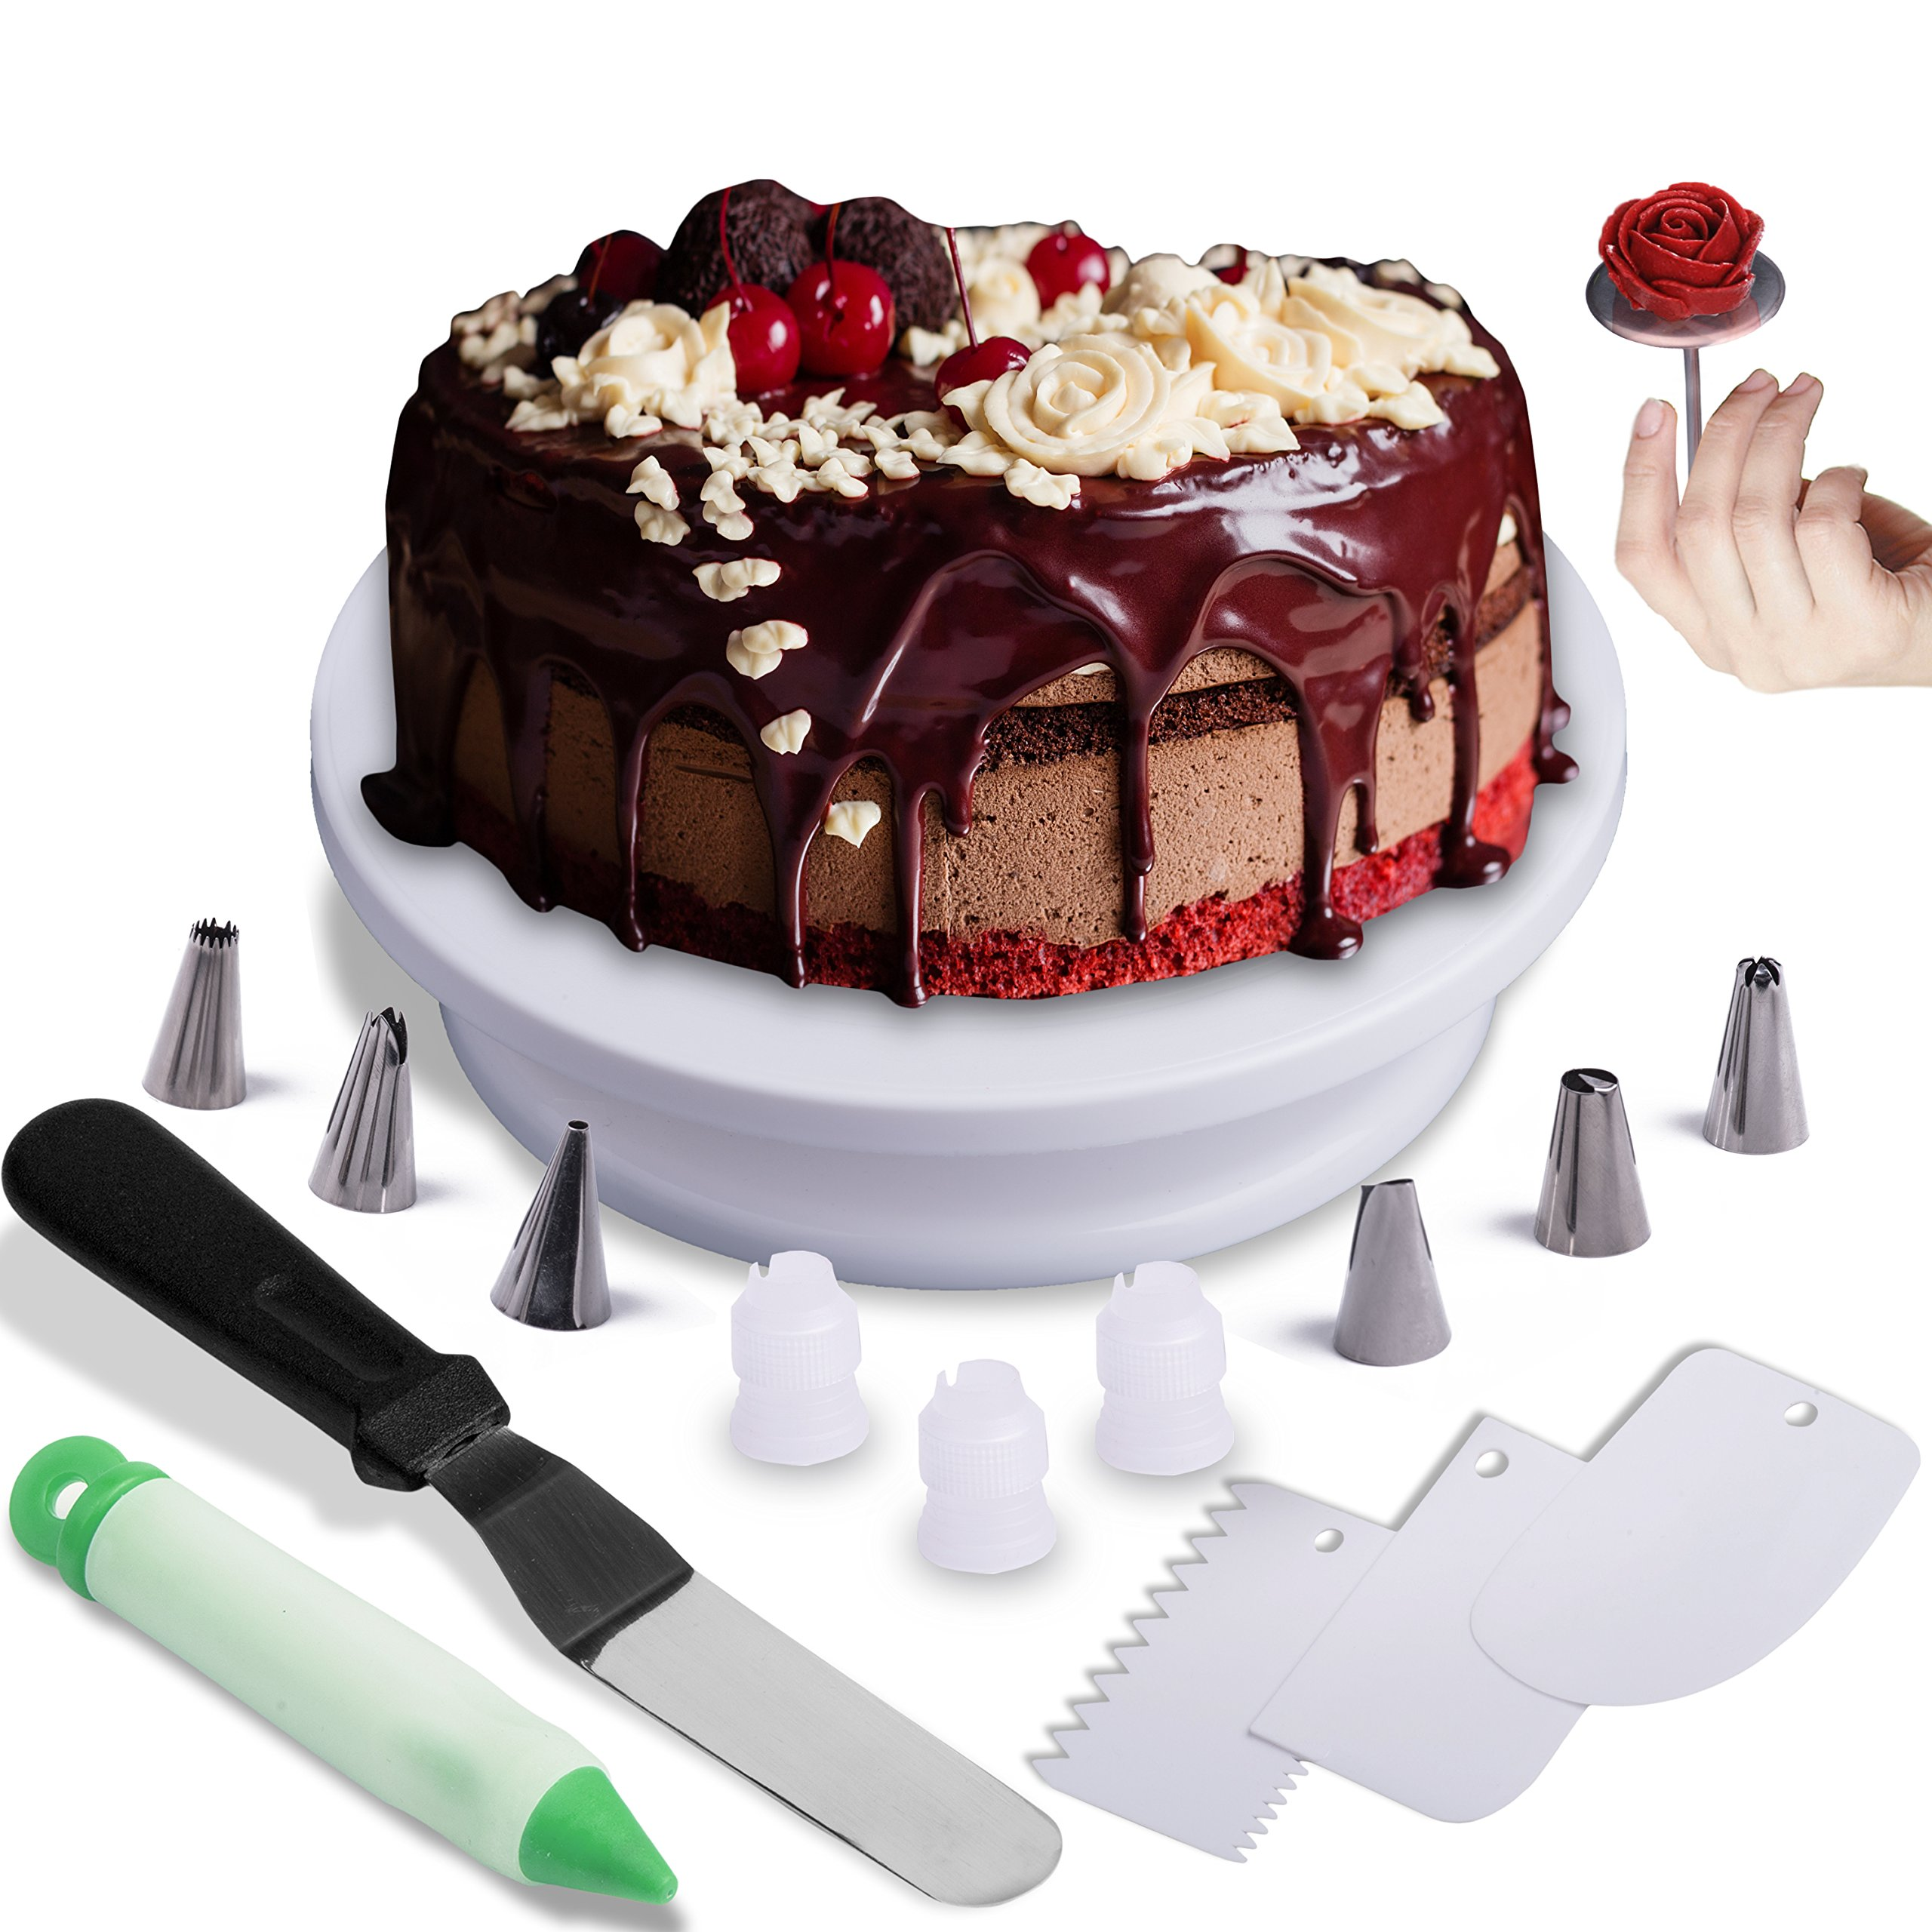 Cake Turntable Decorating Rotating Spinning Stand Plate. Perfect New Set. All You Need For Your Amazing Icing Cake 16 pcs